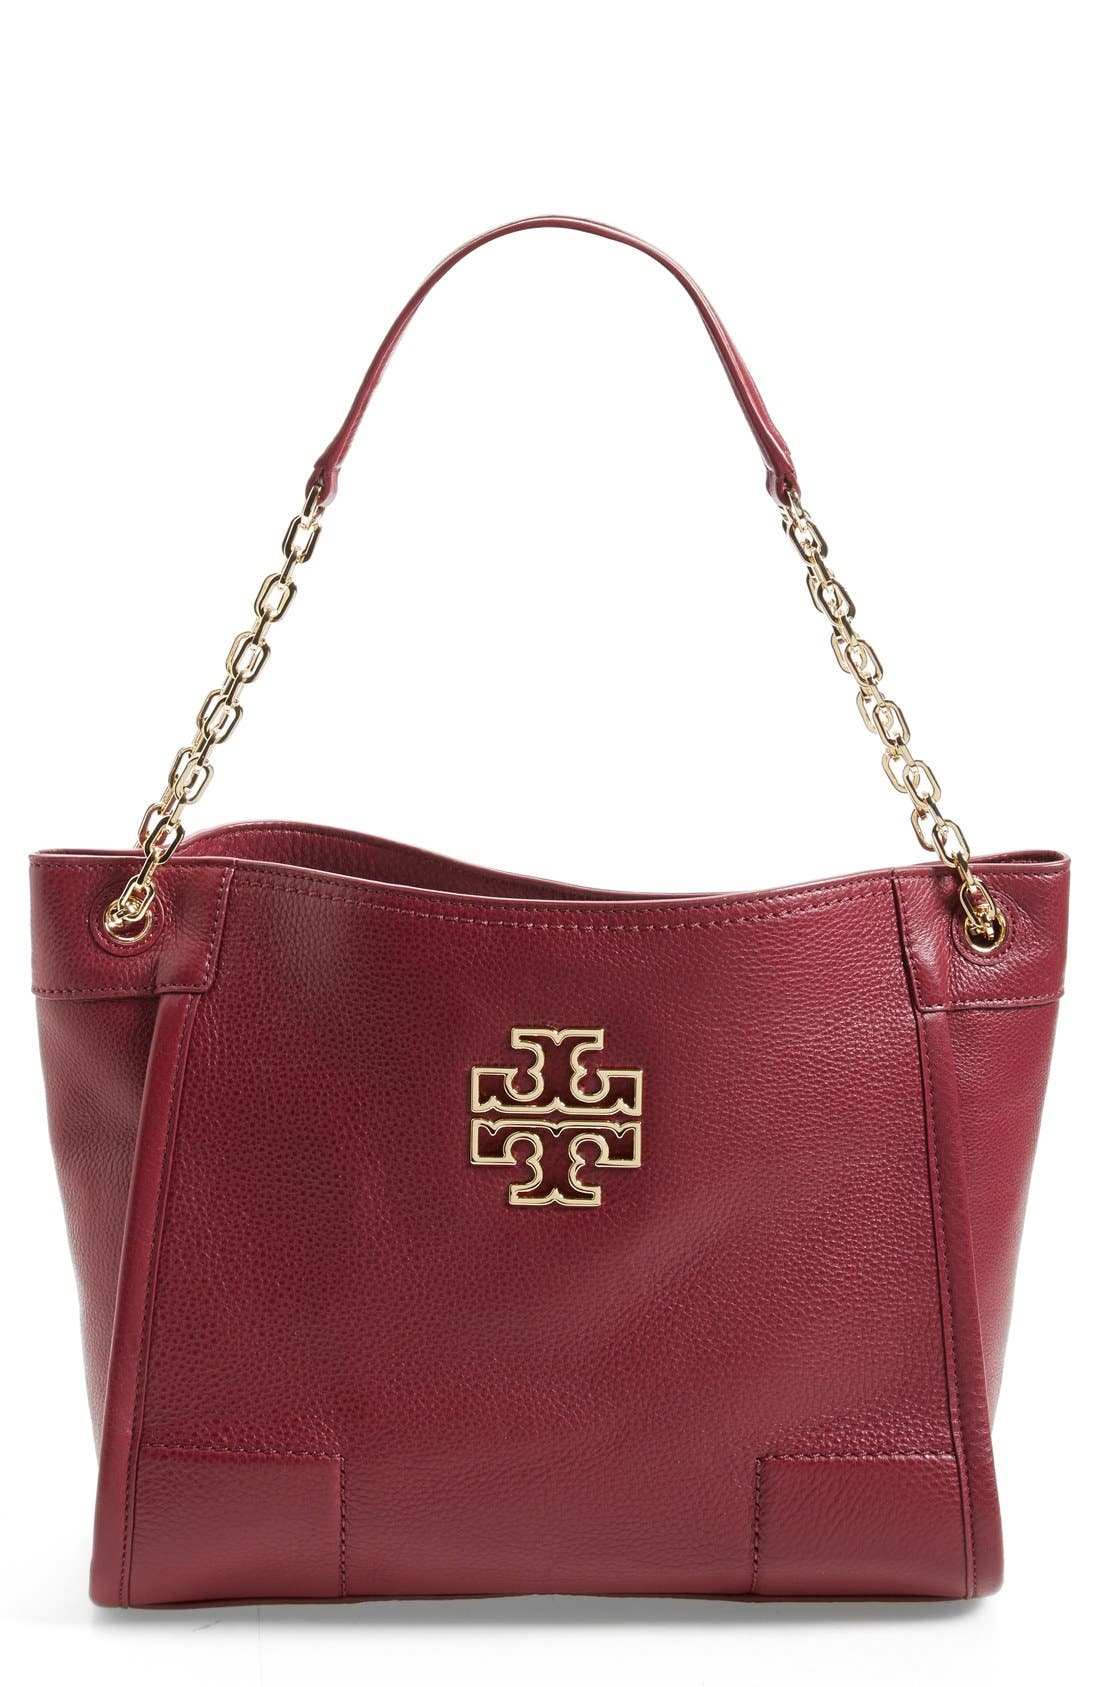 Alternate Image 1 Selected - Tory Burch 'Small Britten' Leather Slouchy Tote